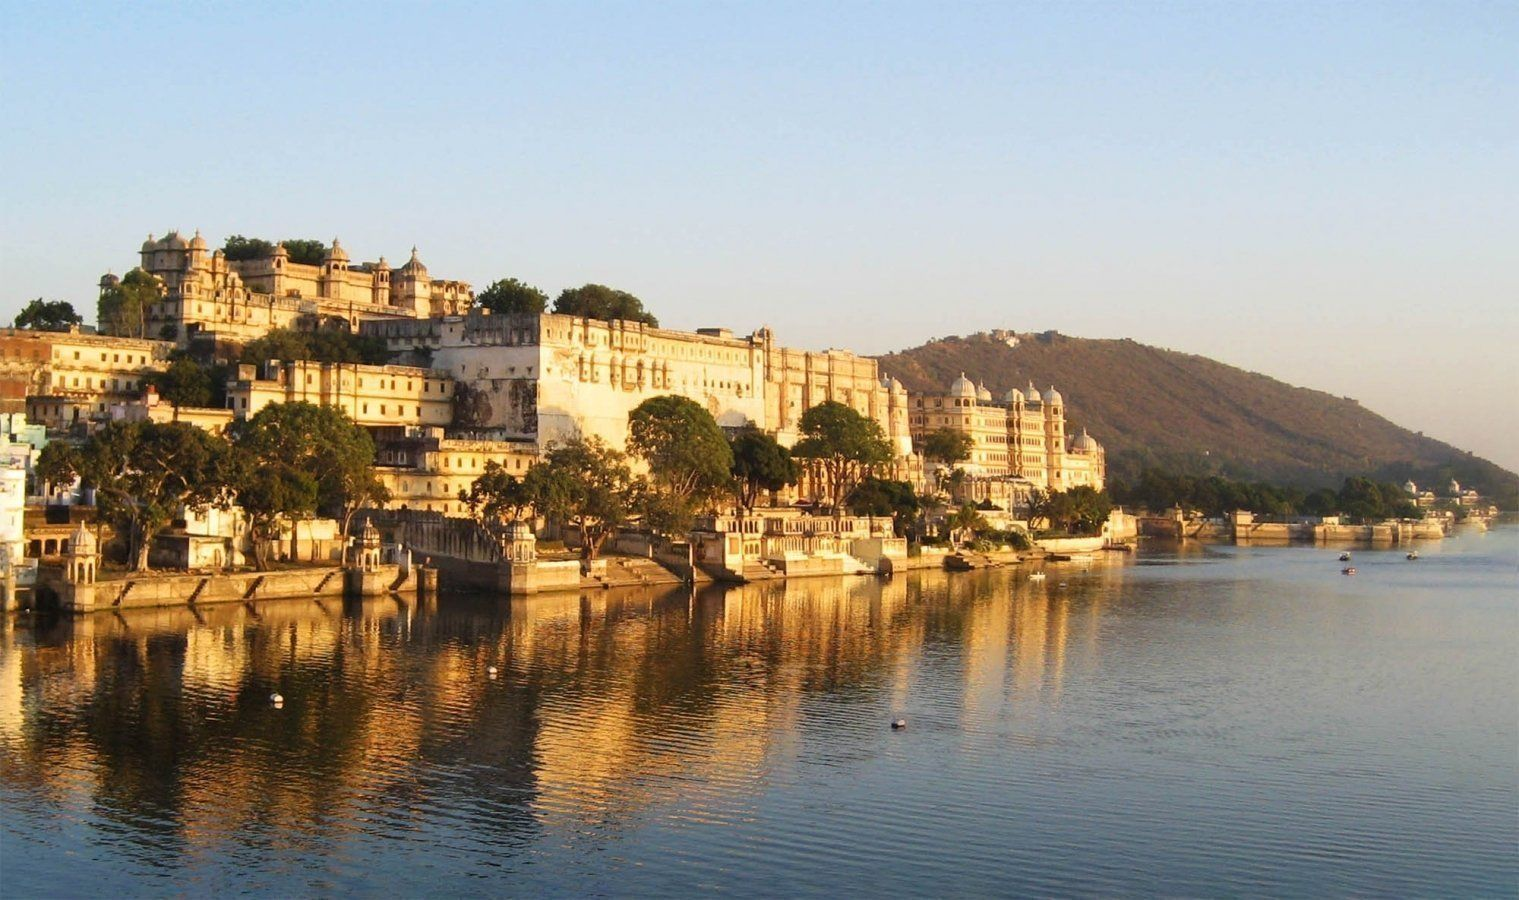 Udaipur in India: City among the lakes